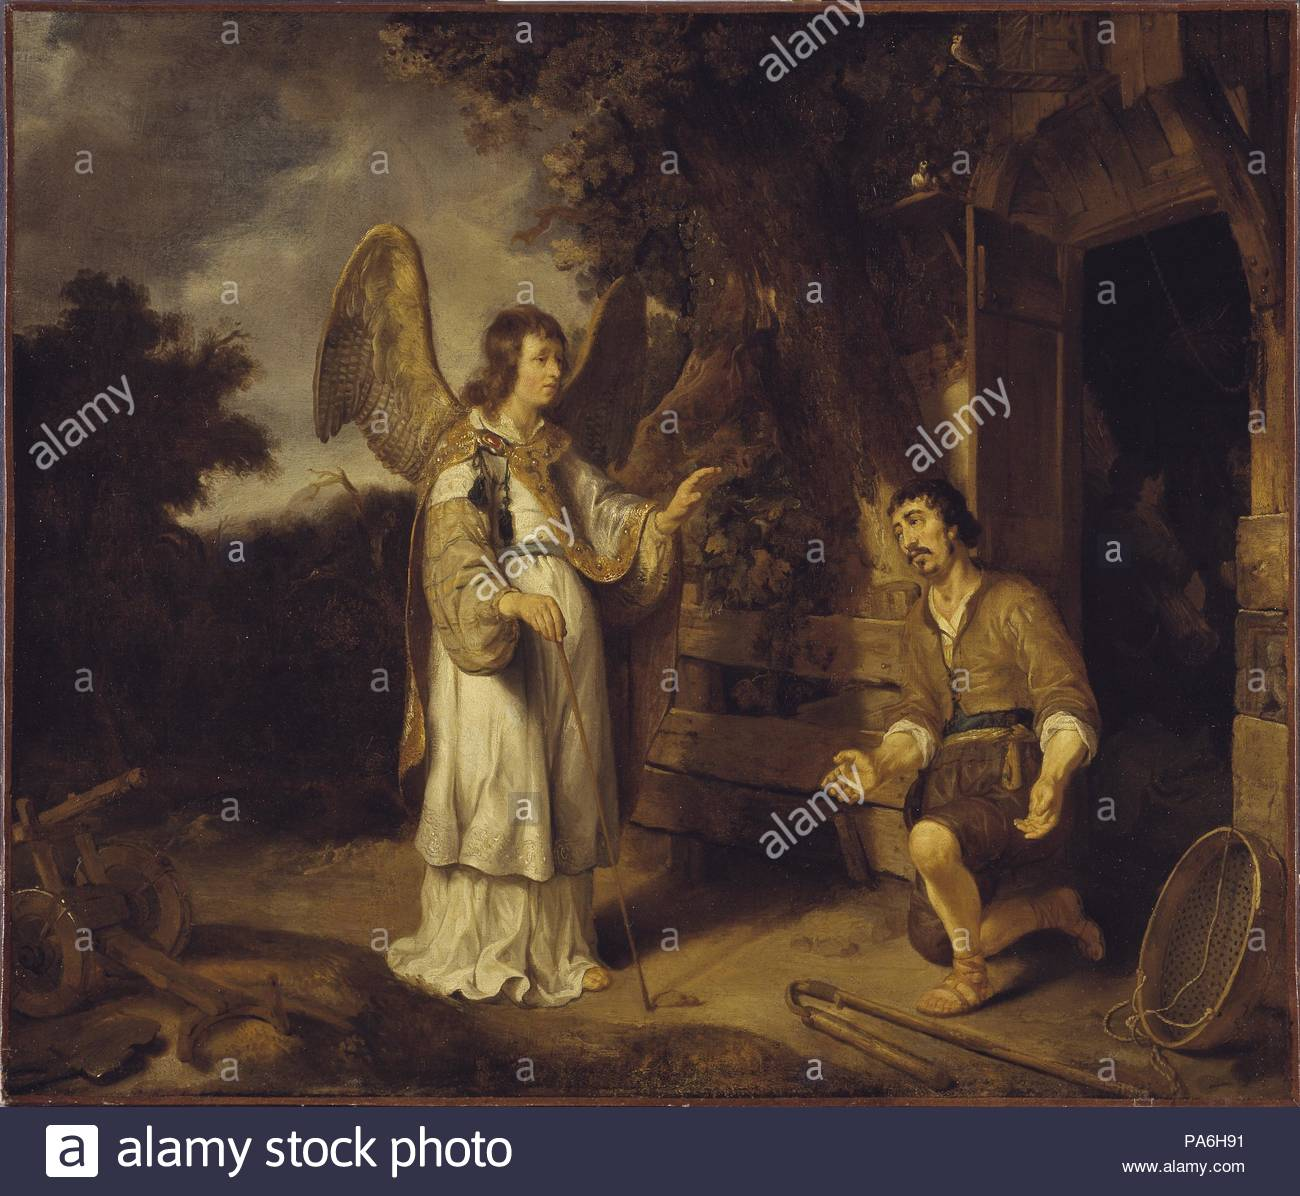 The Angel of the Lord Visits Gideon. Museum: Nationalmuseum Stockholm. - Stock Image